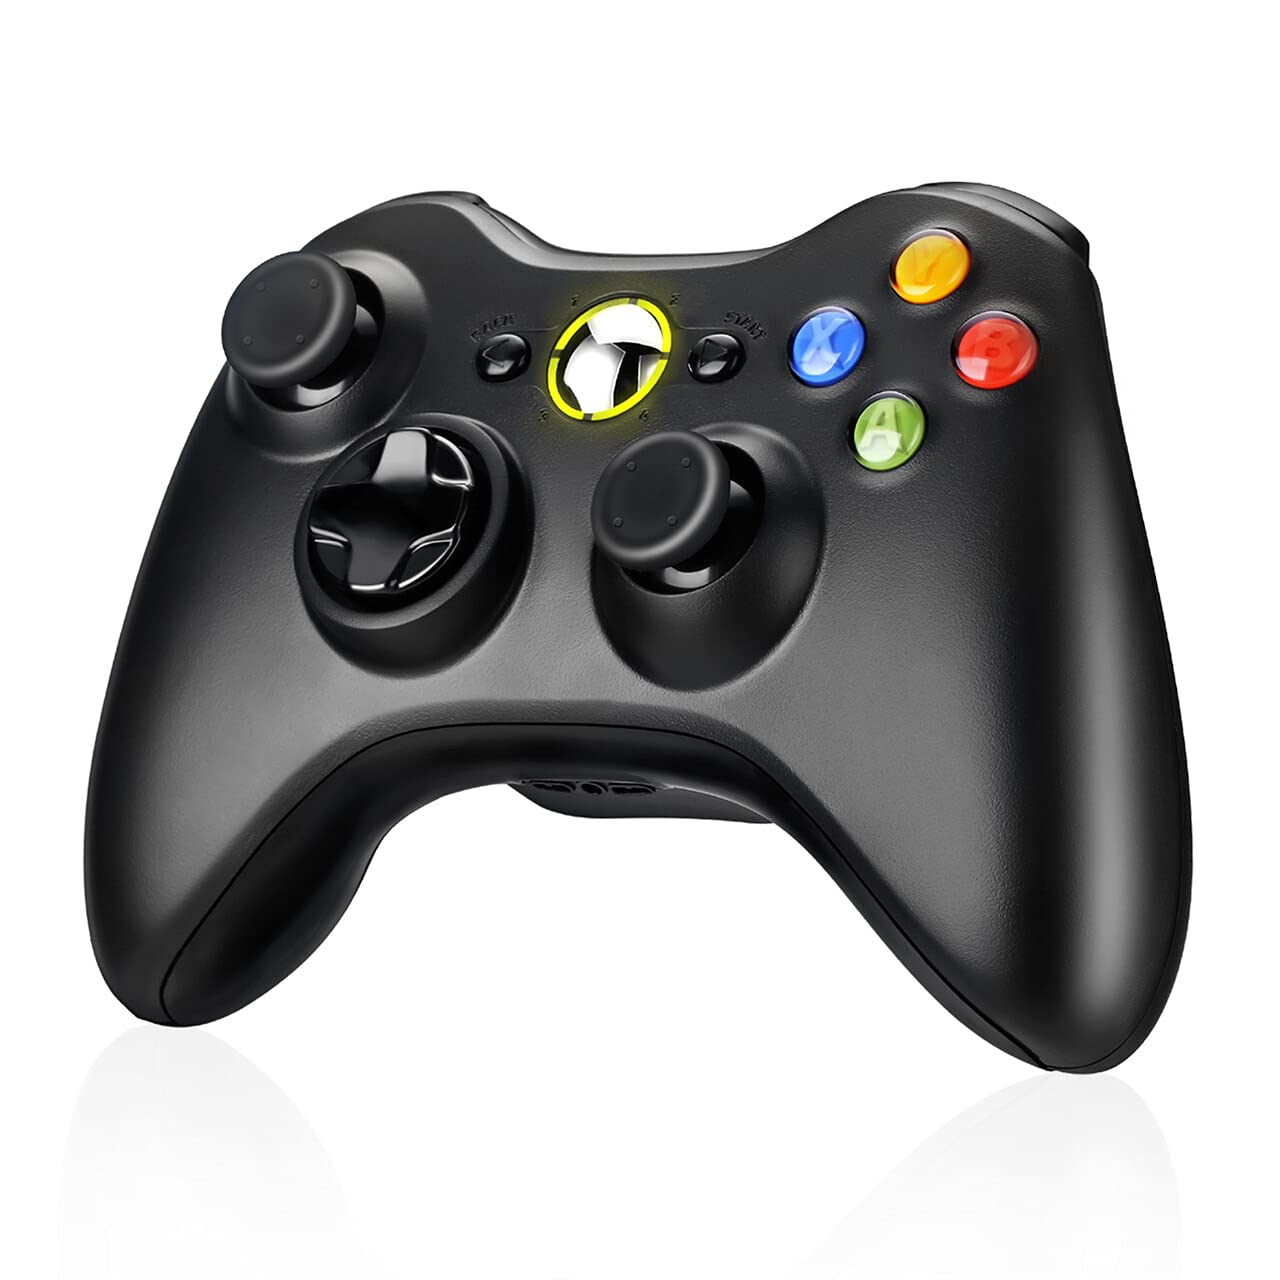 Powerextra Xbox online shopping 360 Wireless Long-awaited Controller Remote Hea Gamepad with